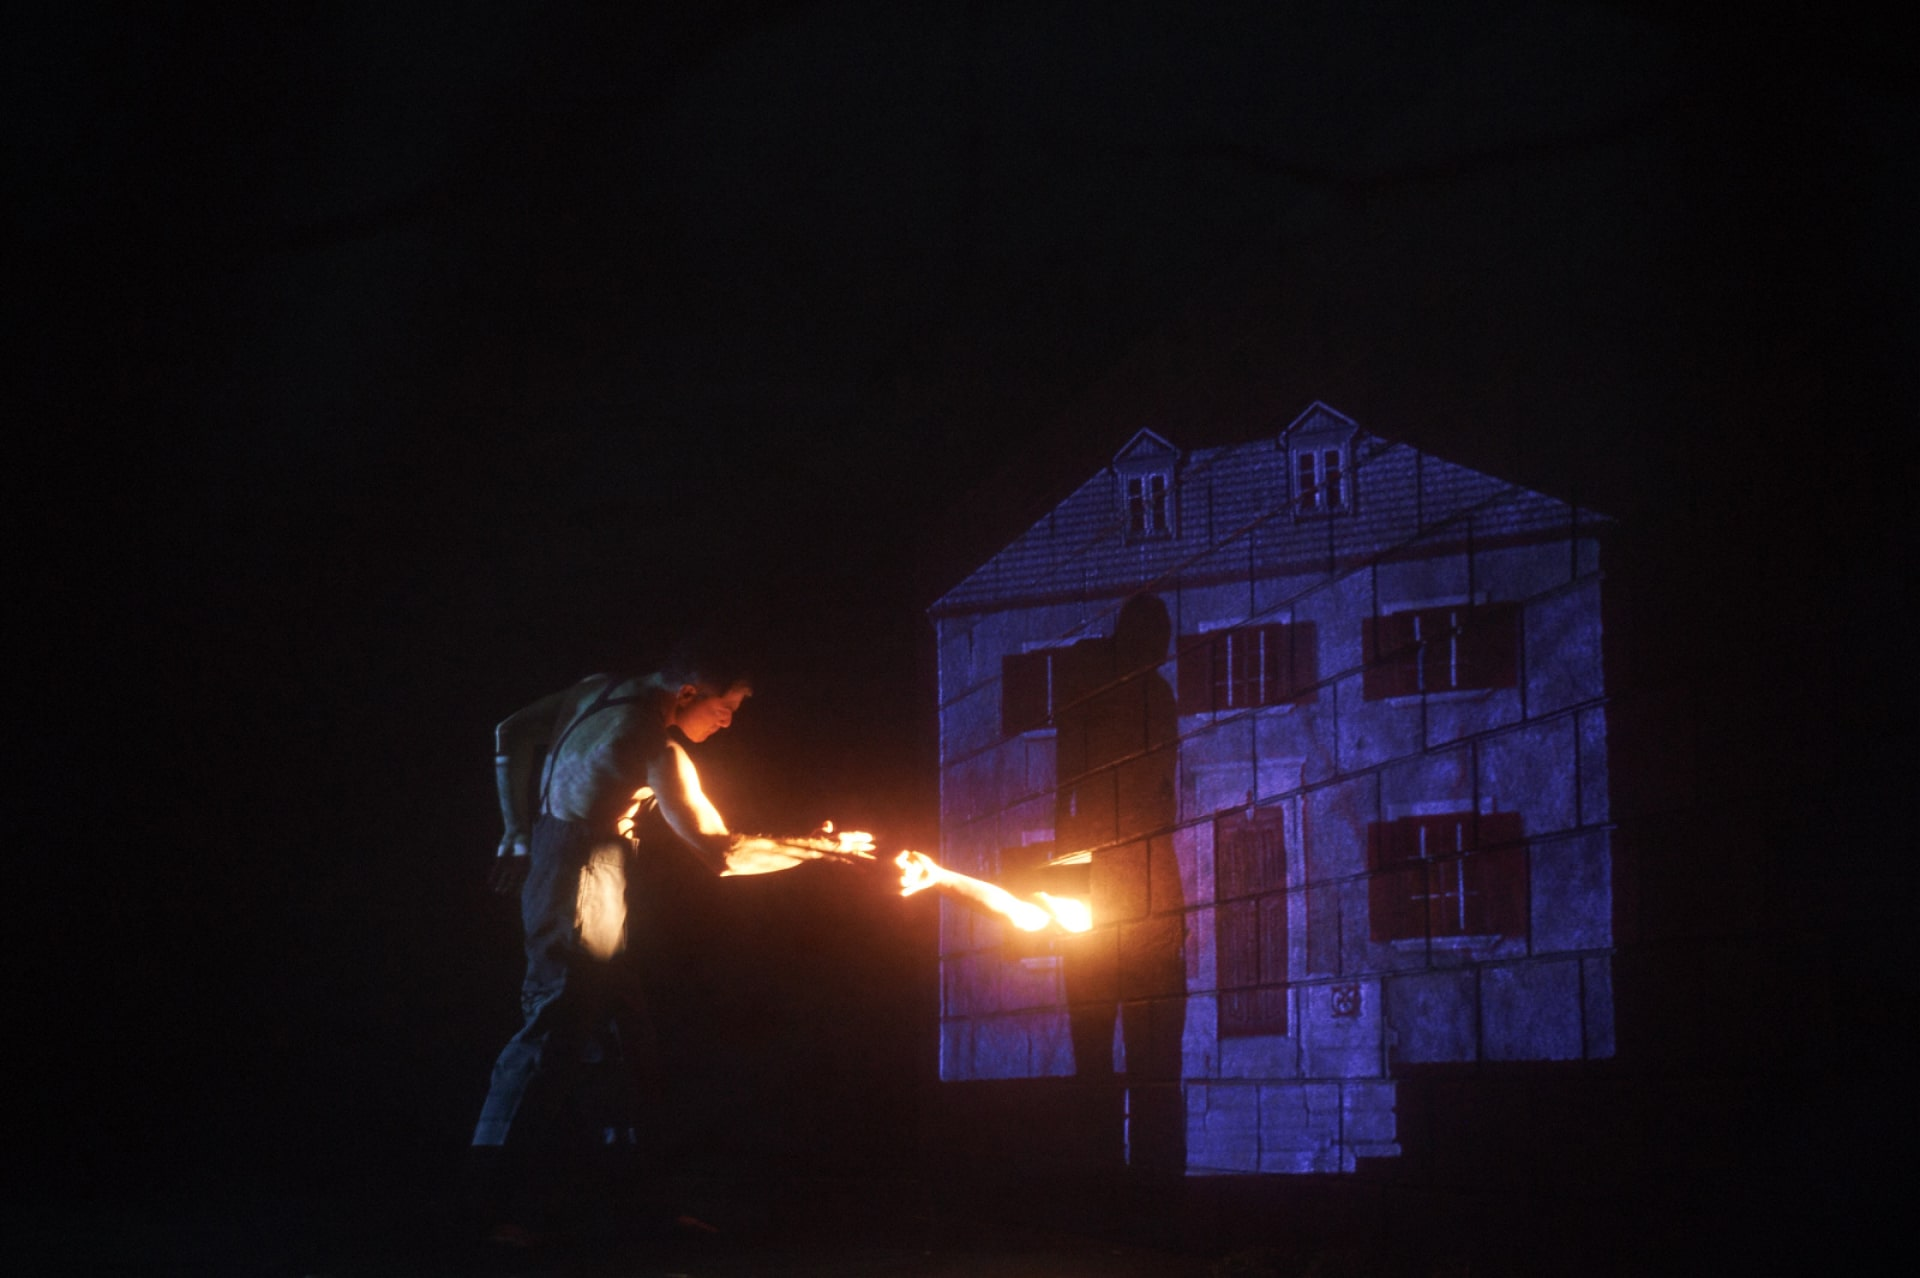 Shirtless man in suspenders reaches to brightly lit arm emerging from projected cottage.